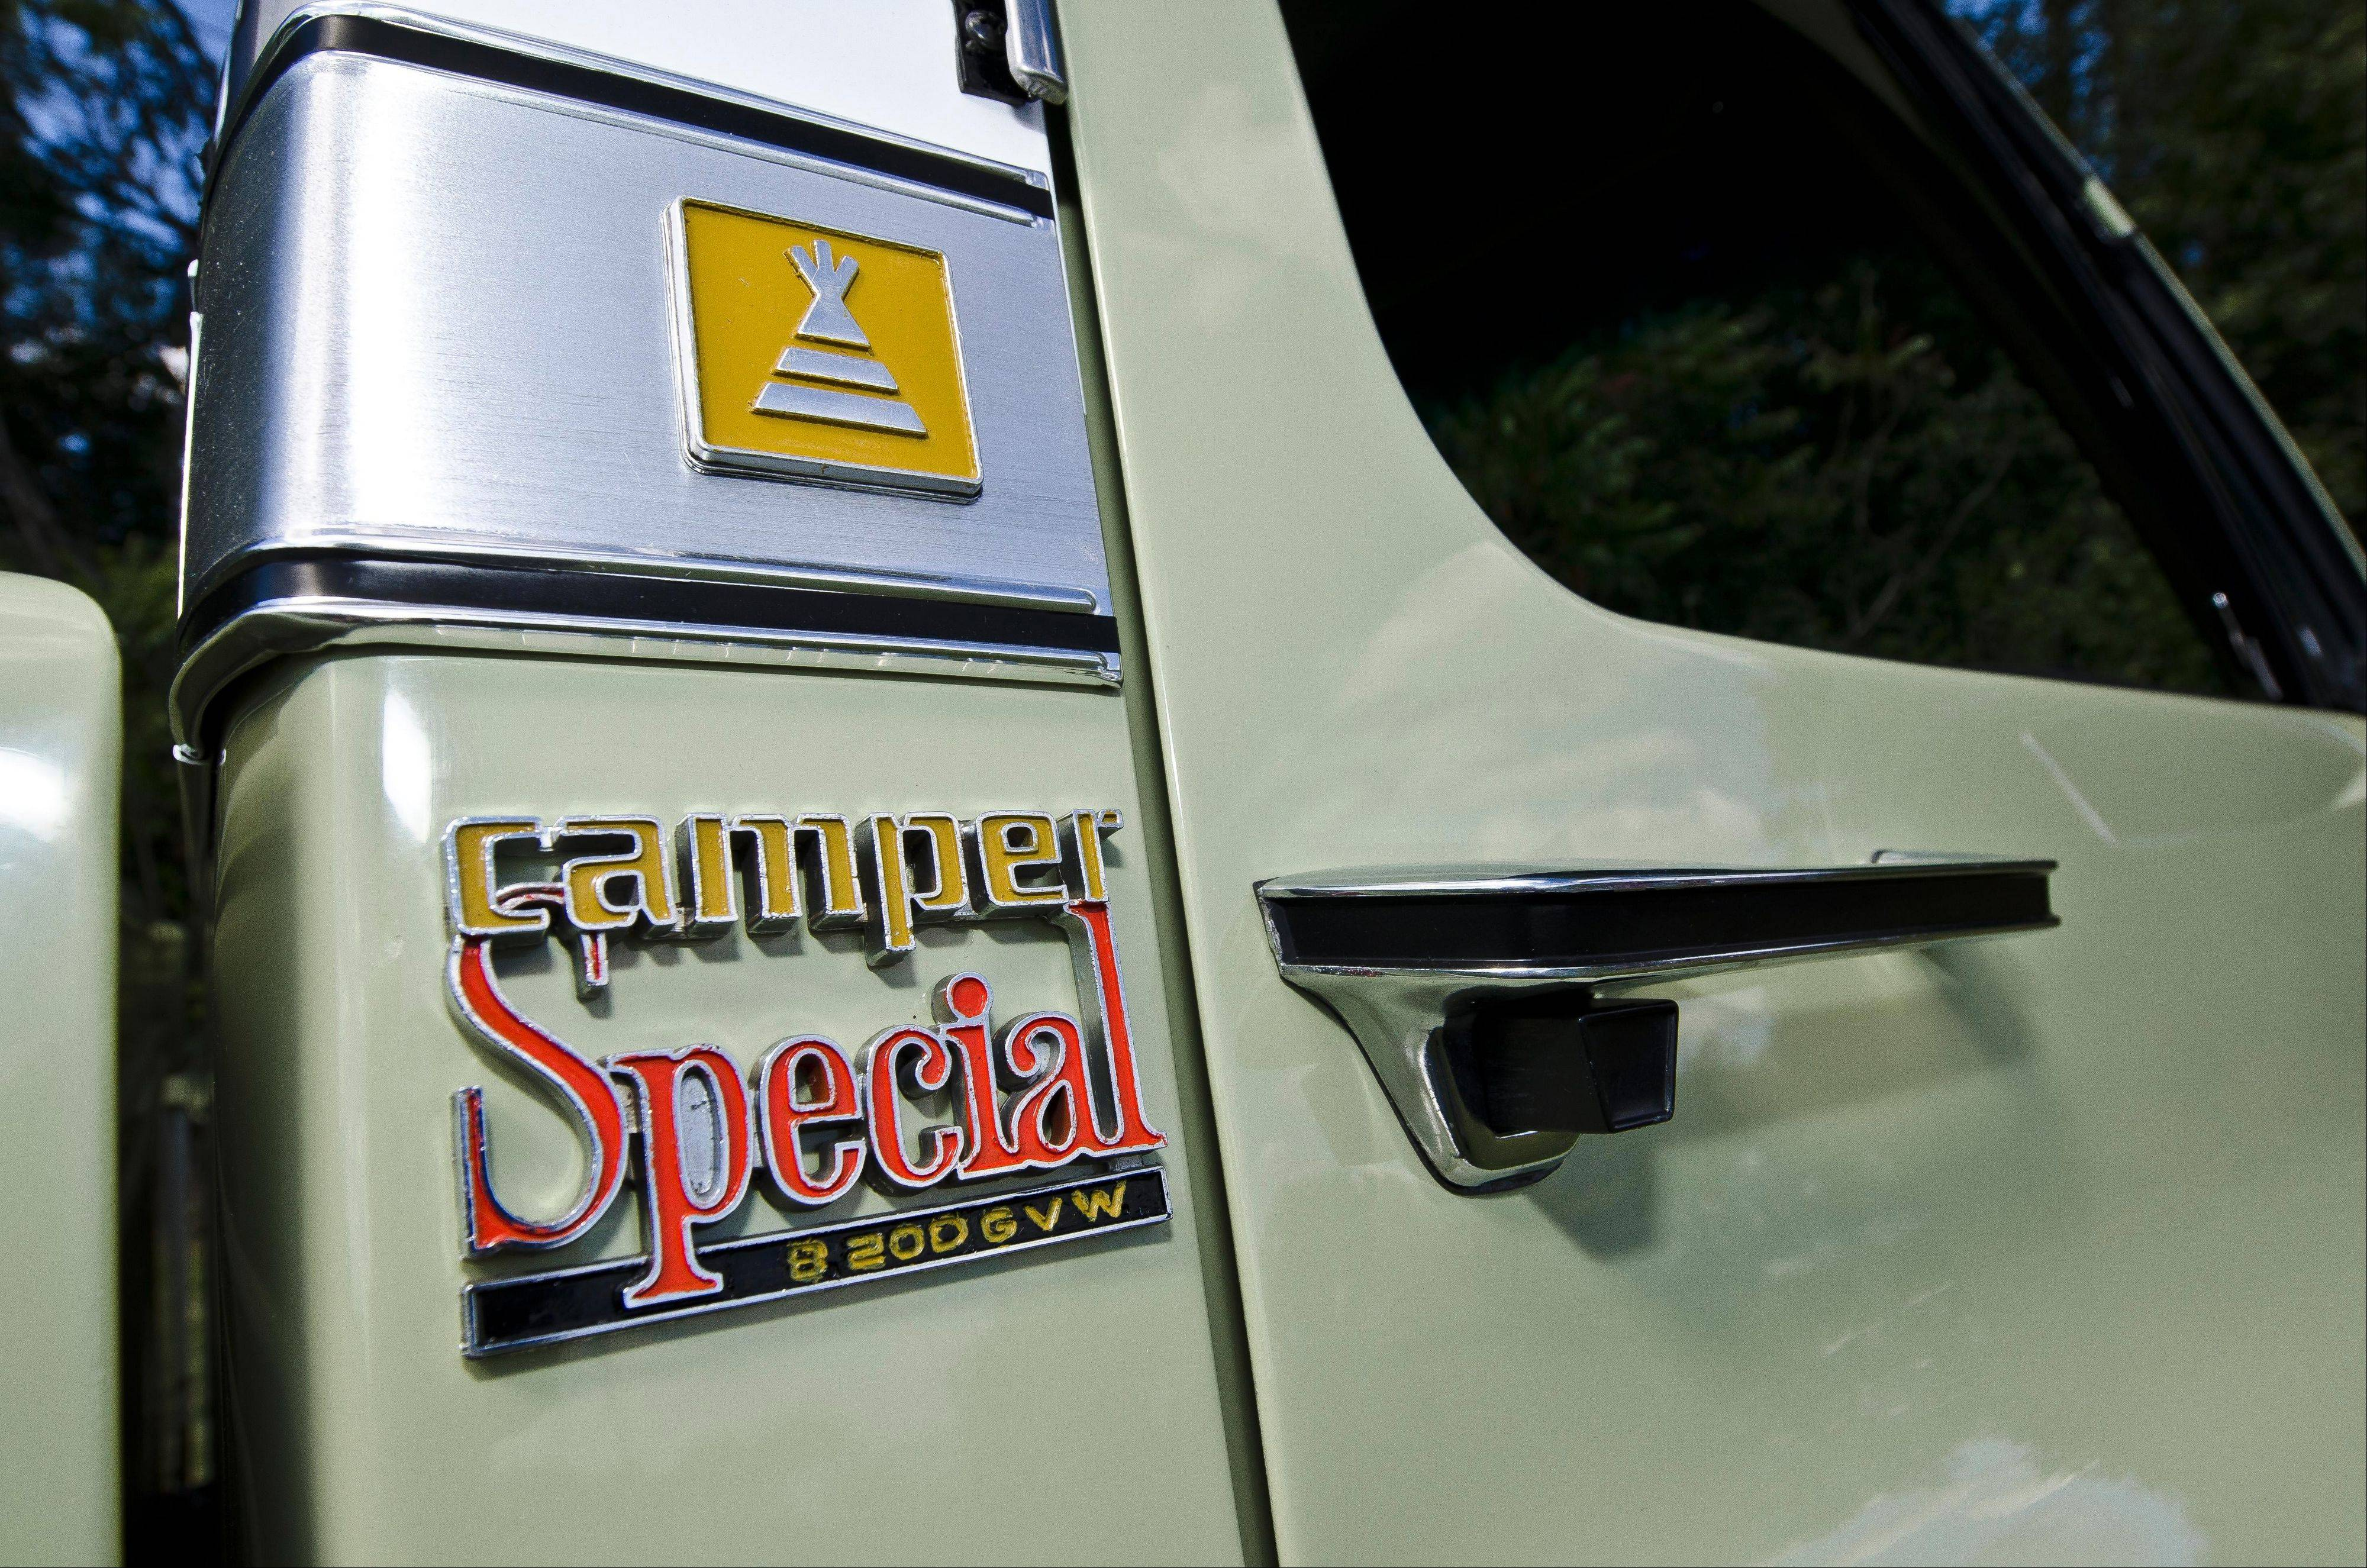 A Camper Special badge indicates this GMC pickup was built for hauling campers and trailers.